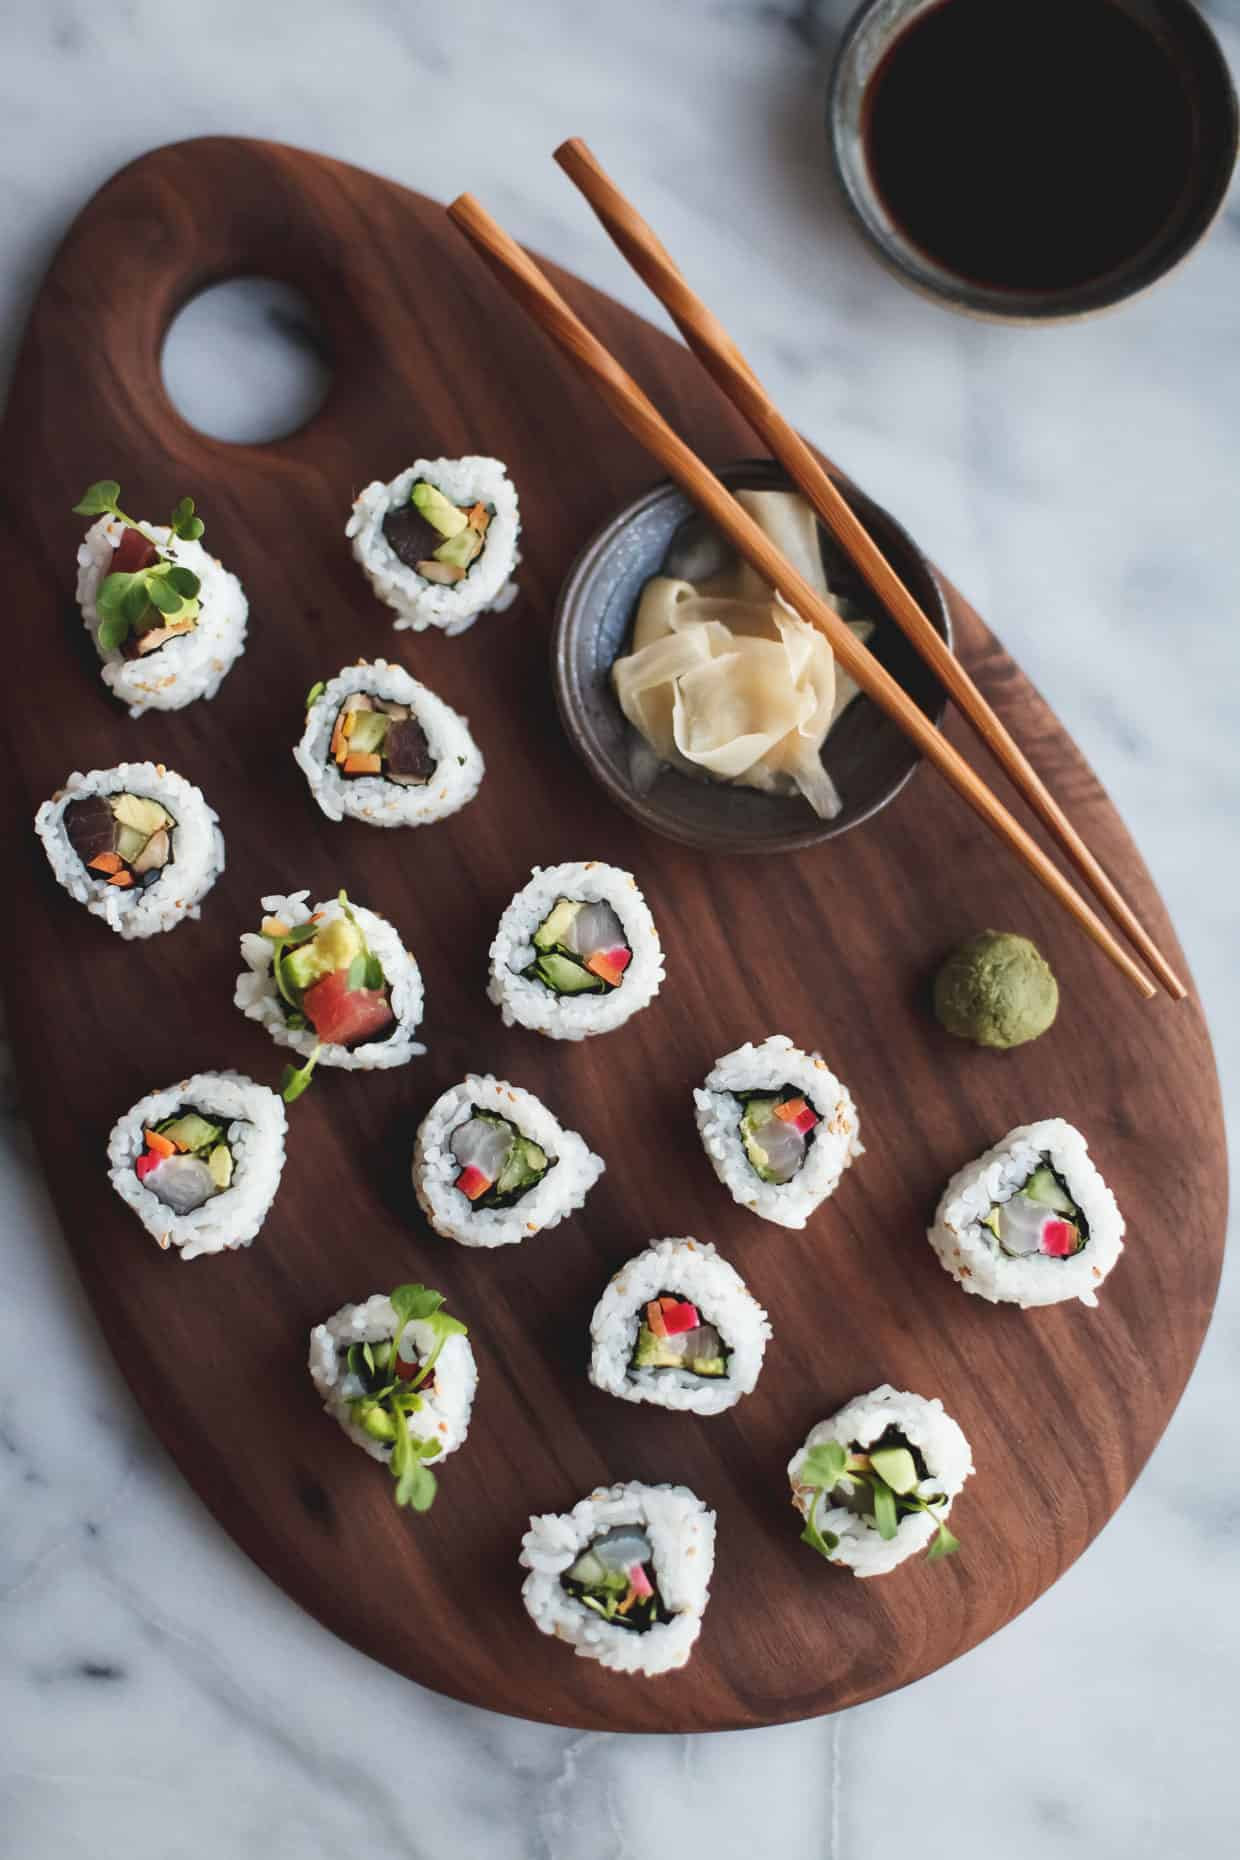 DIY Sushi at Home - A Video